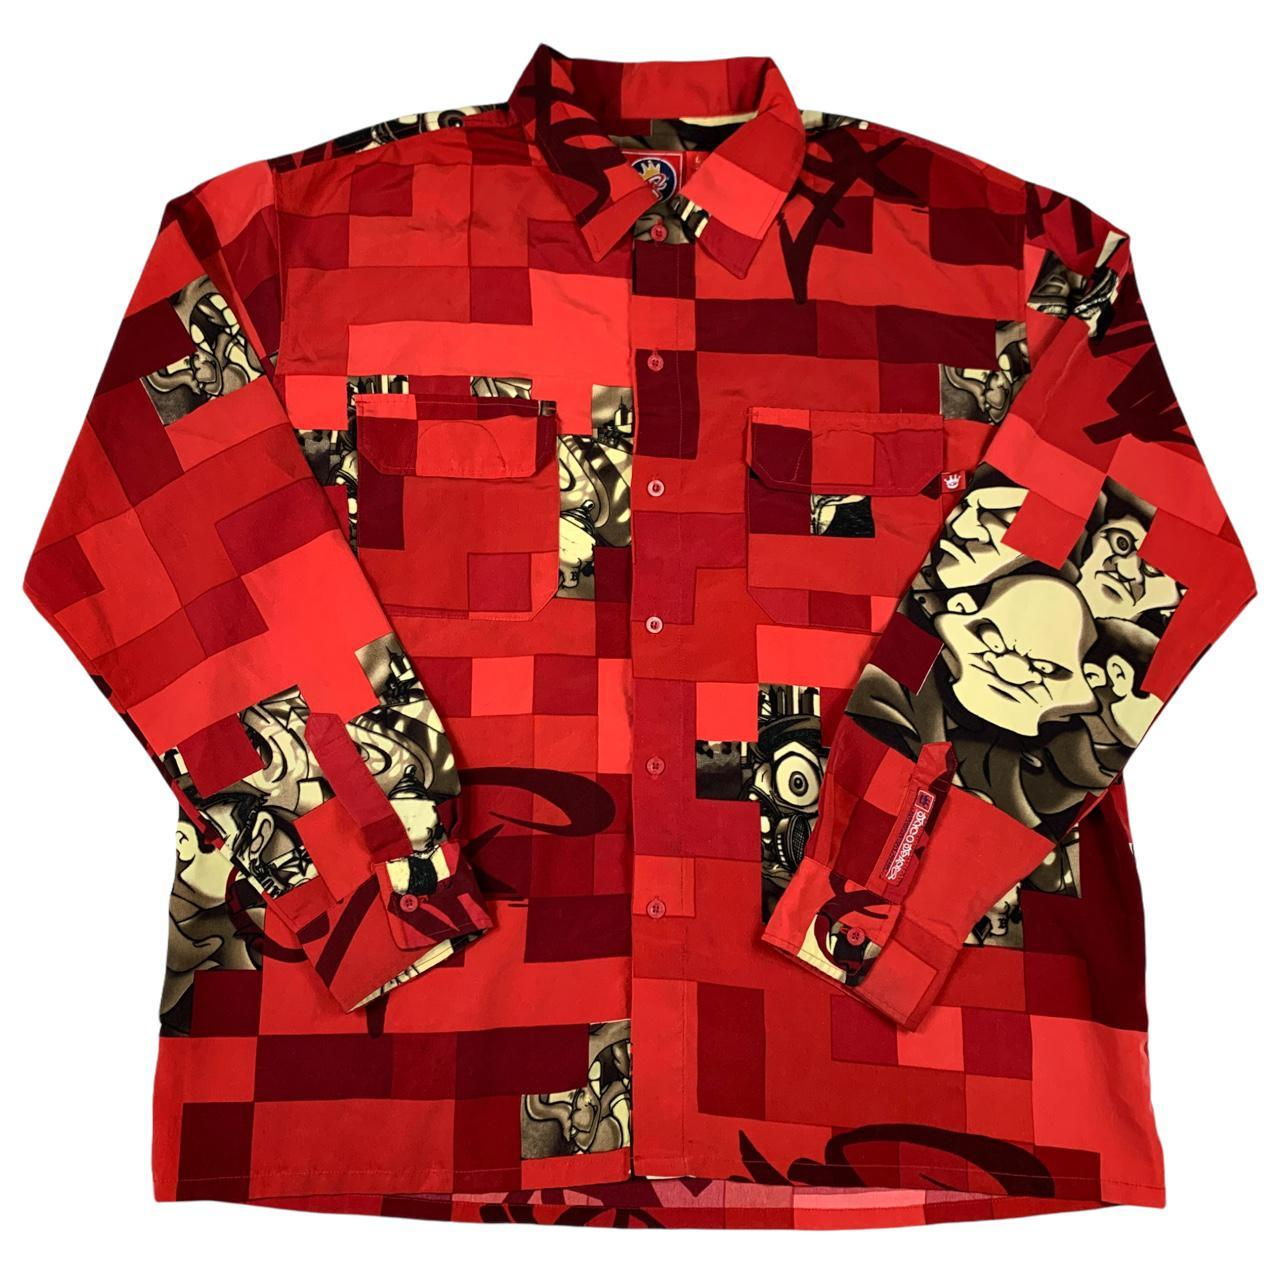 Product Image 1 - JNCO TIME BUTTON UP   This